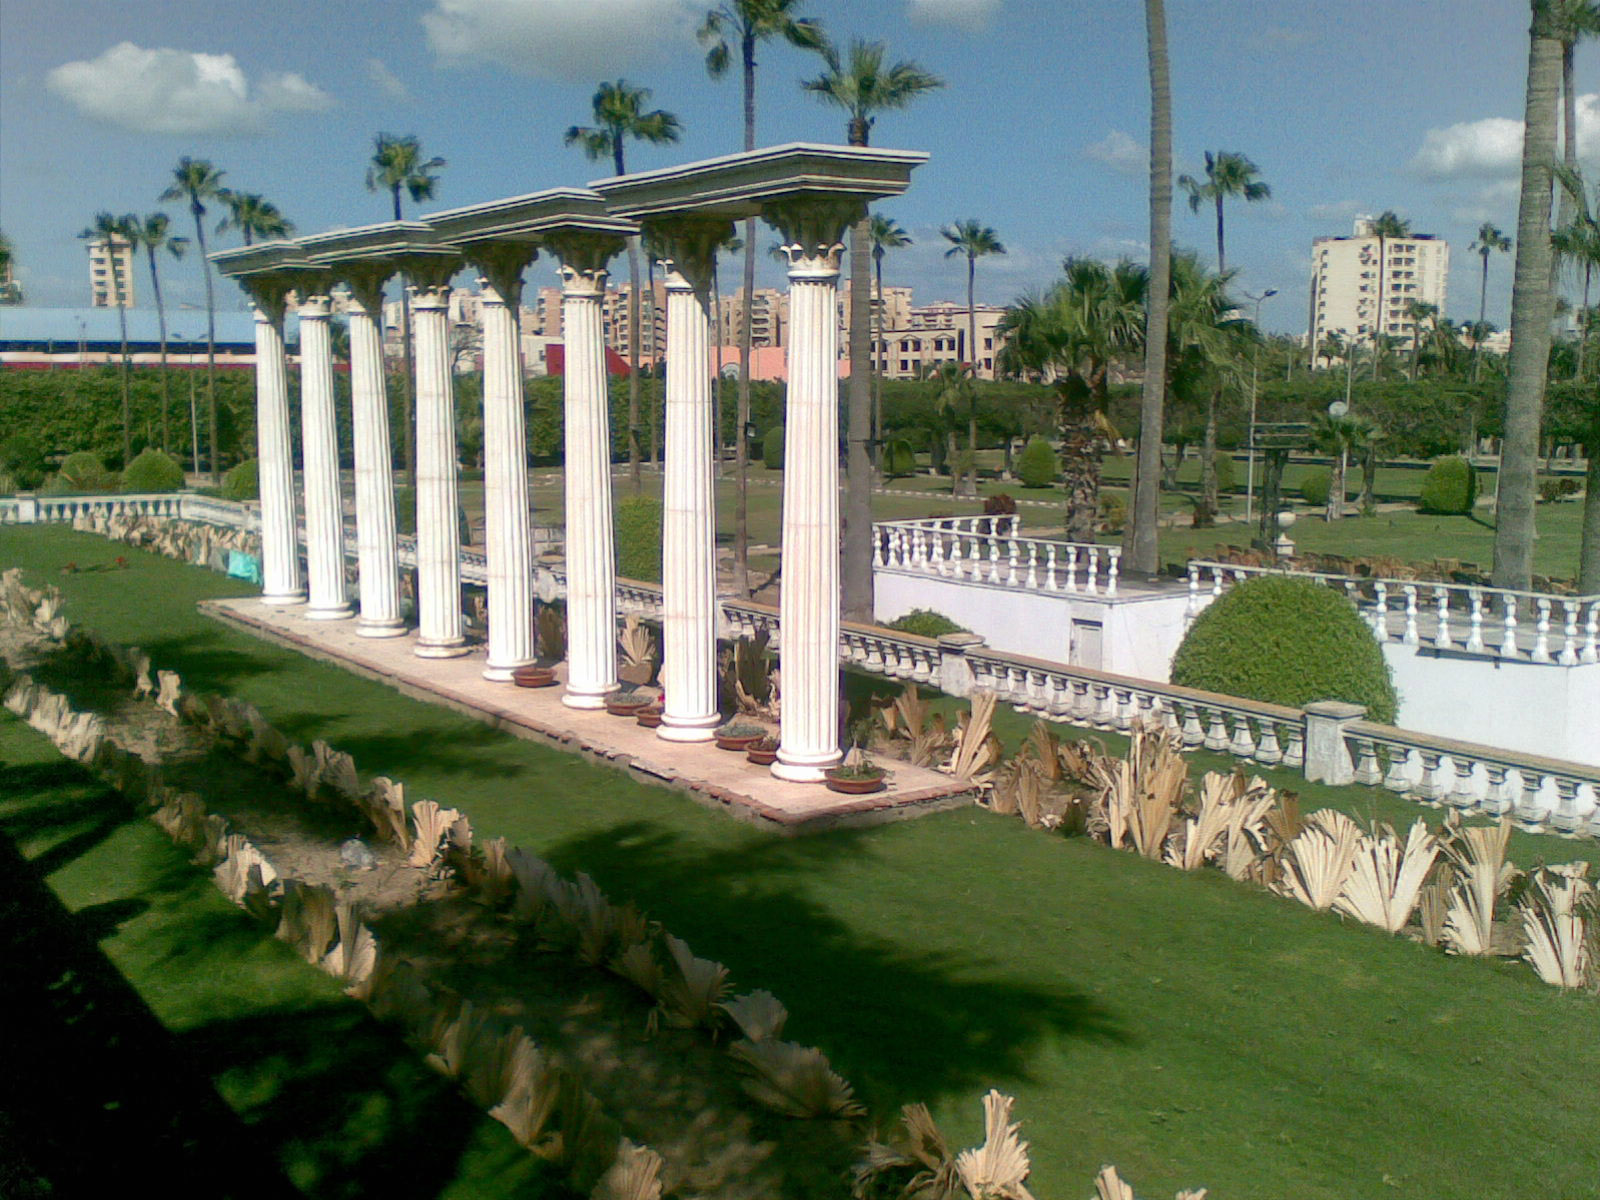 Antoniadies gardens in Alexandria, Egypt